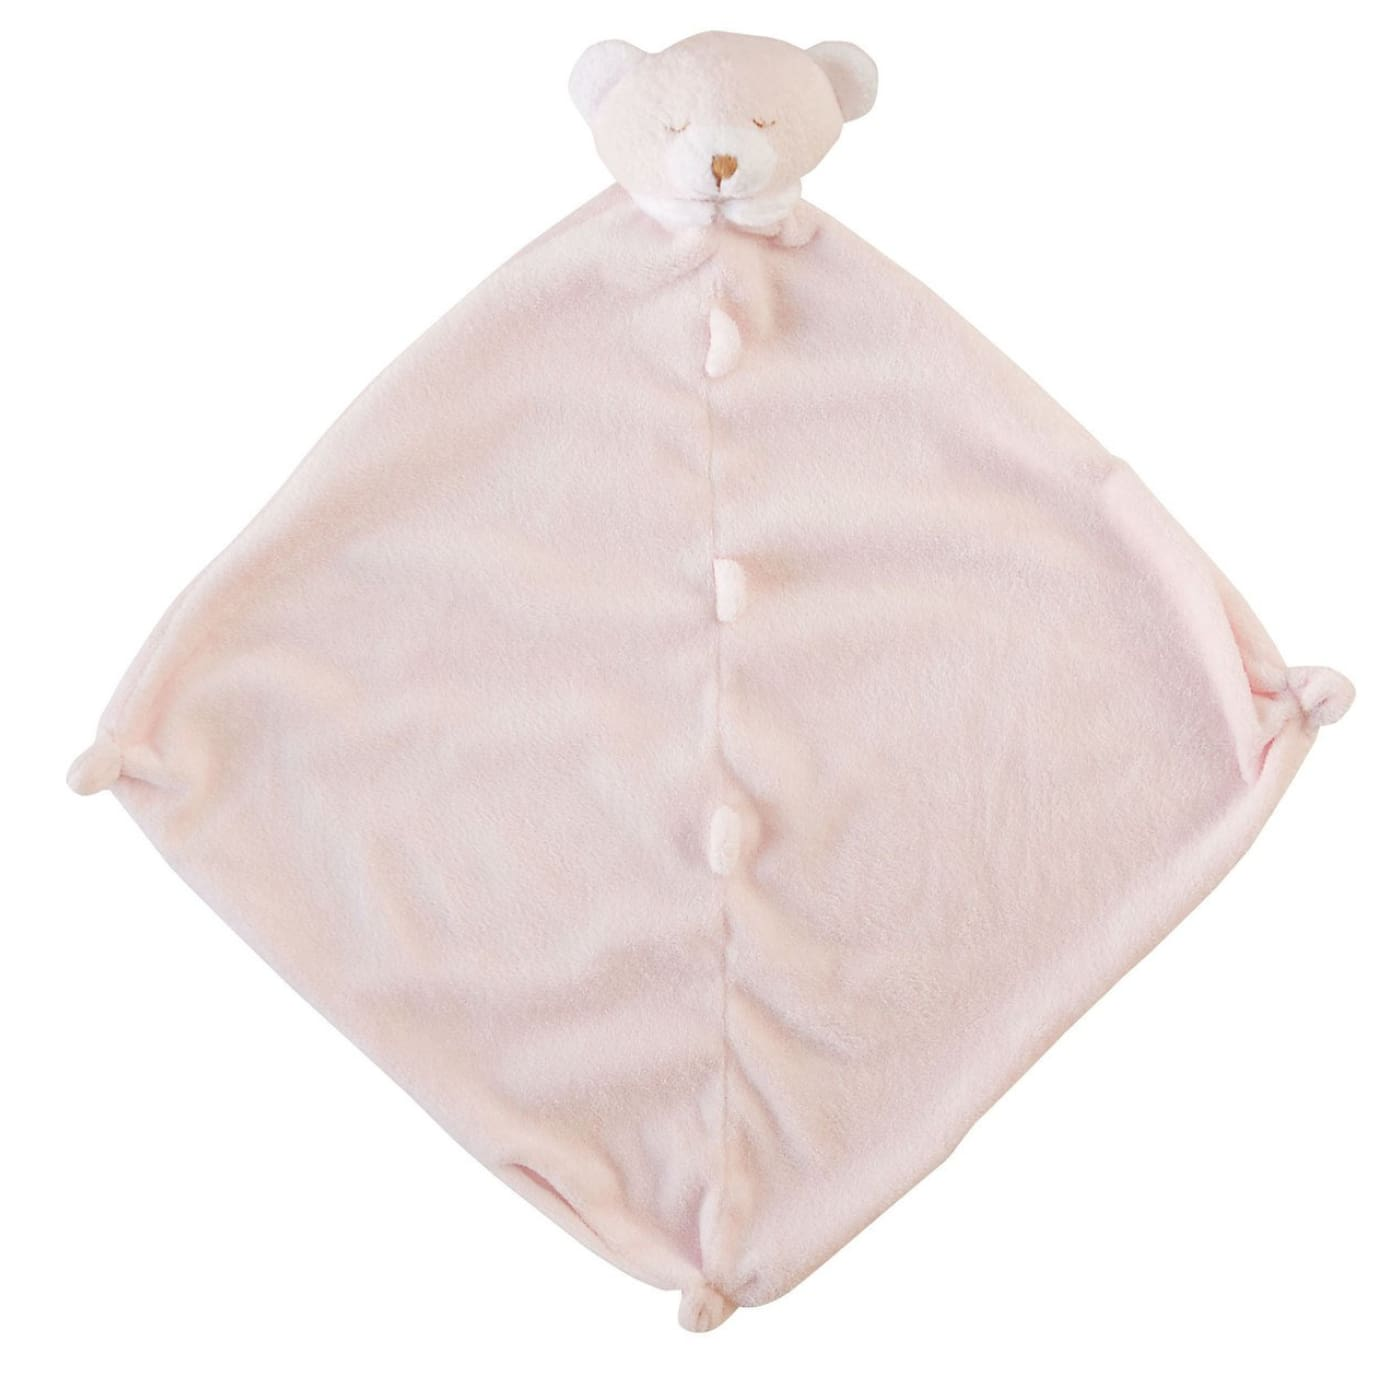 Angel Dear Blankie - Pink Bear - TOYS & PLAY - BLANKIES/COMFORTERS/RATTLES